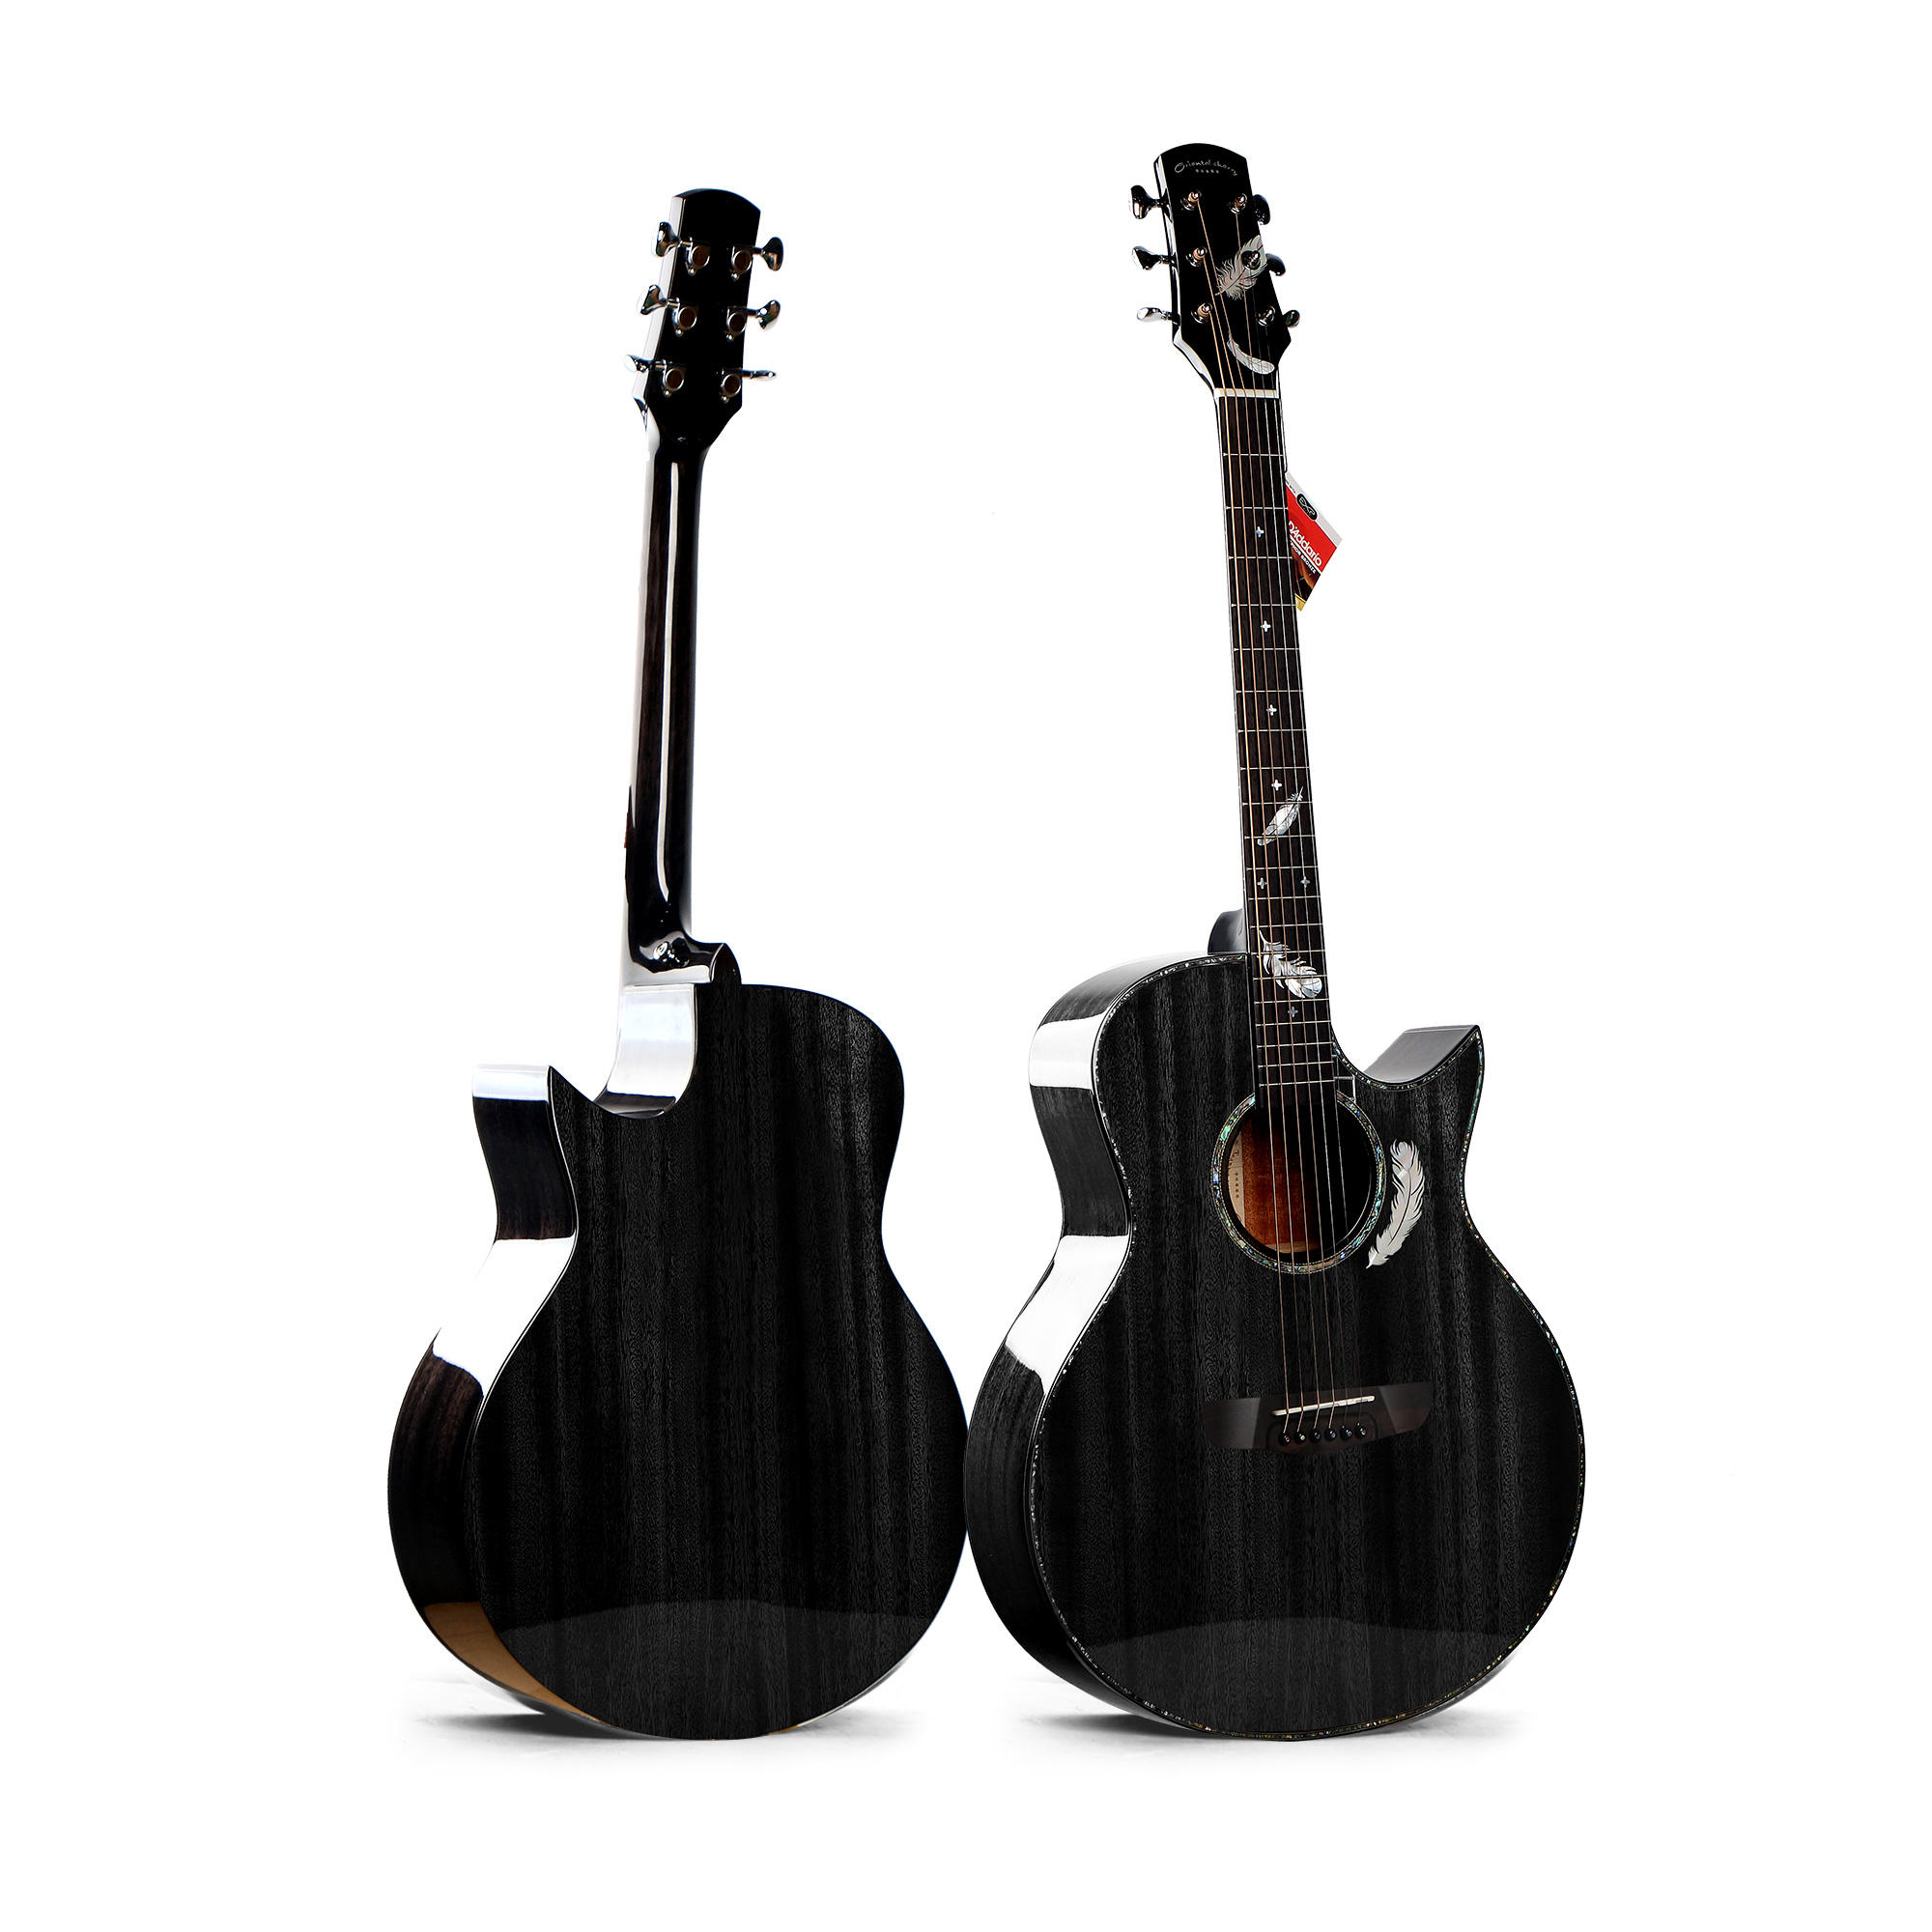 41 inch Top grade spruce solid new design acoustic guitar hand made high quality artful guitar W-M7